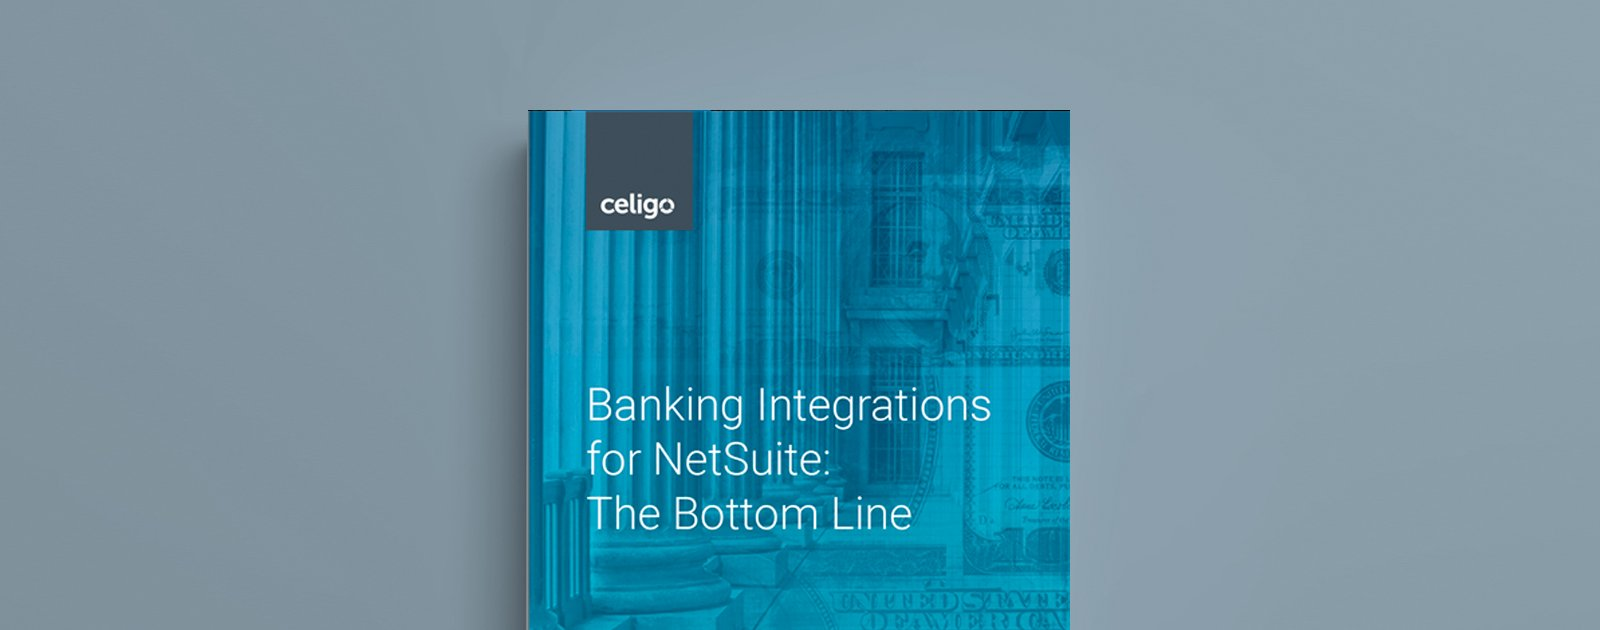 Banking Integrations for NetSuite: The Bottom Line